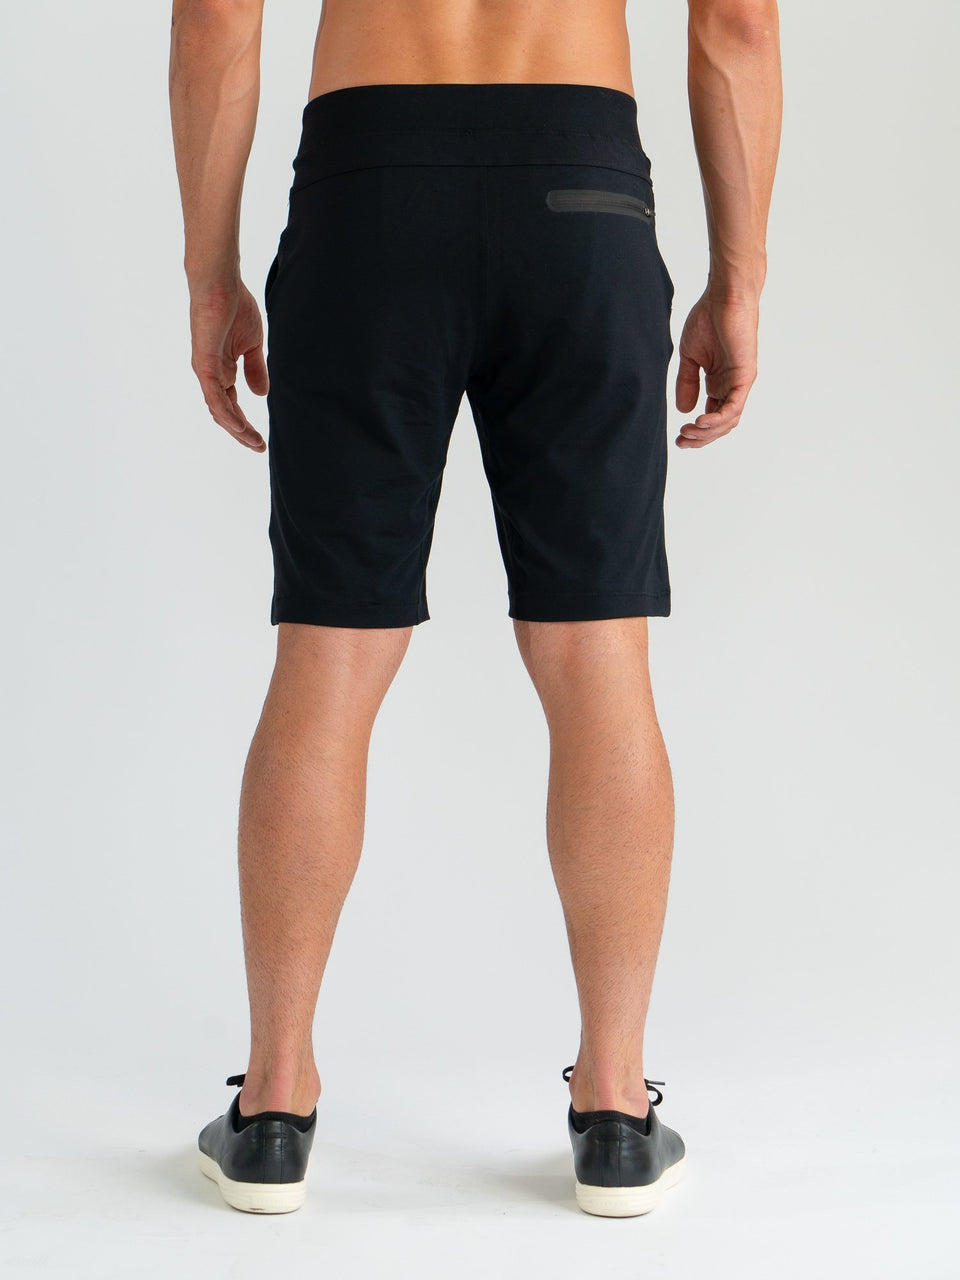 206 Short - SODO Apparel - SHORTS